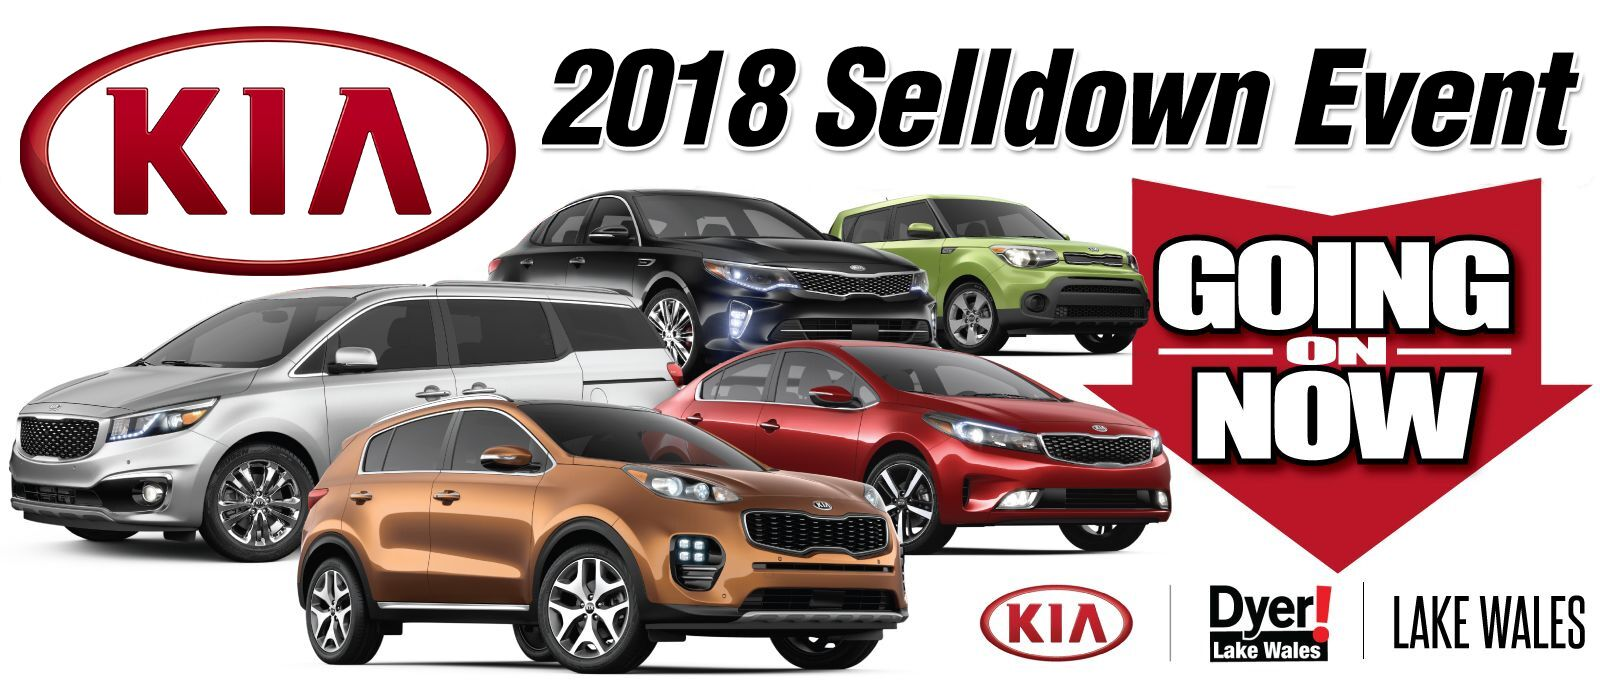 2018 Selldown Event